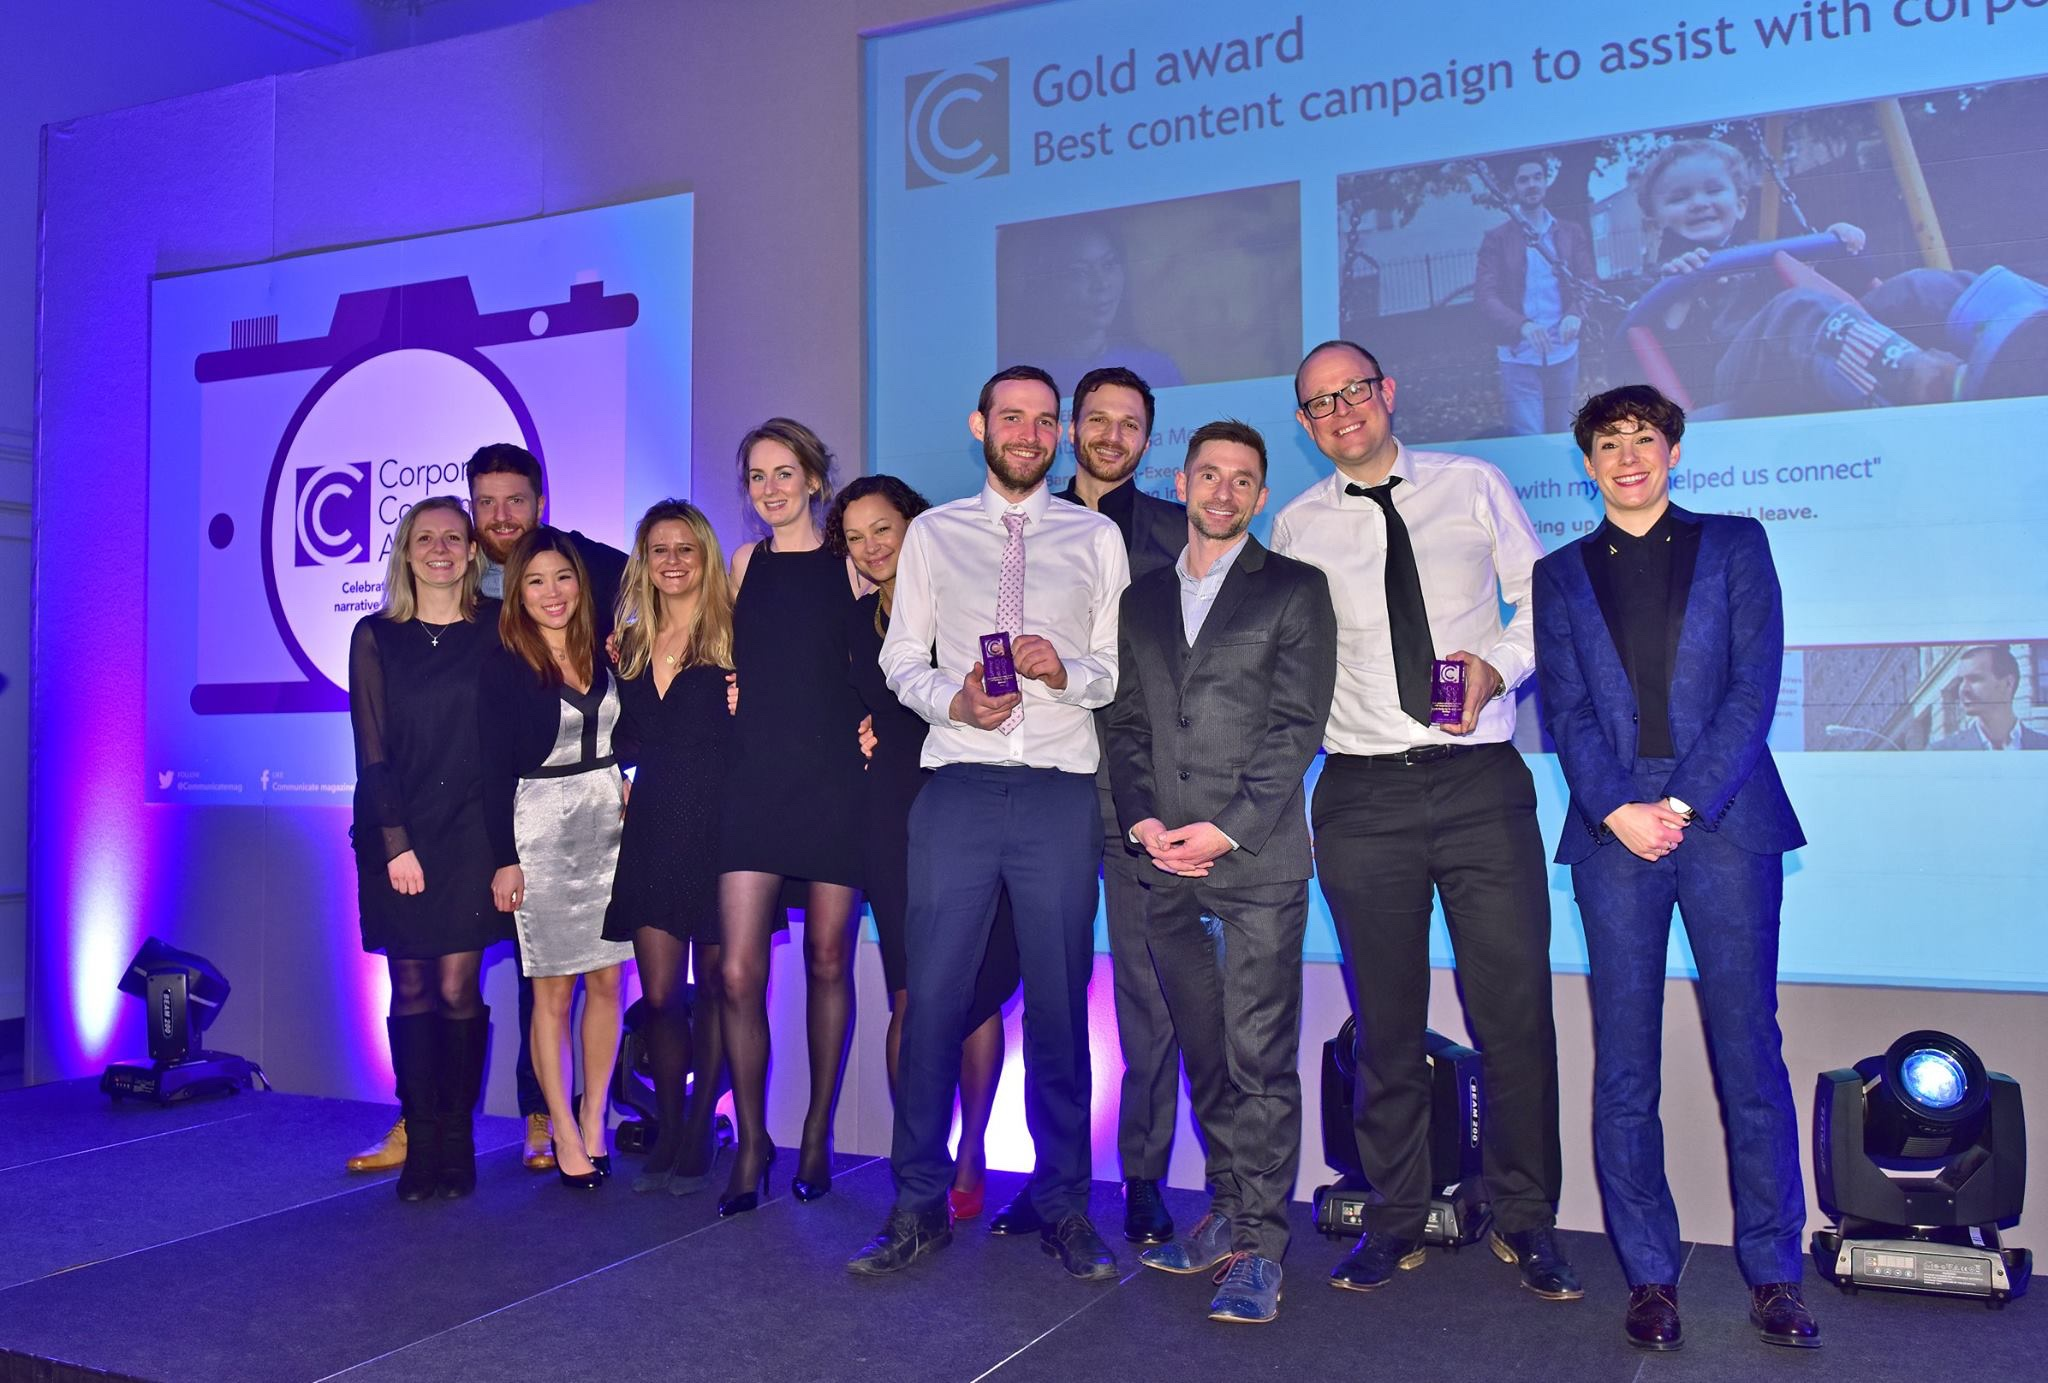 The Speak and Barclays teams were presented the award on stage by comedian Suzi Ruffell